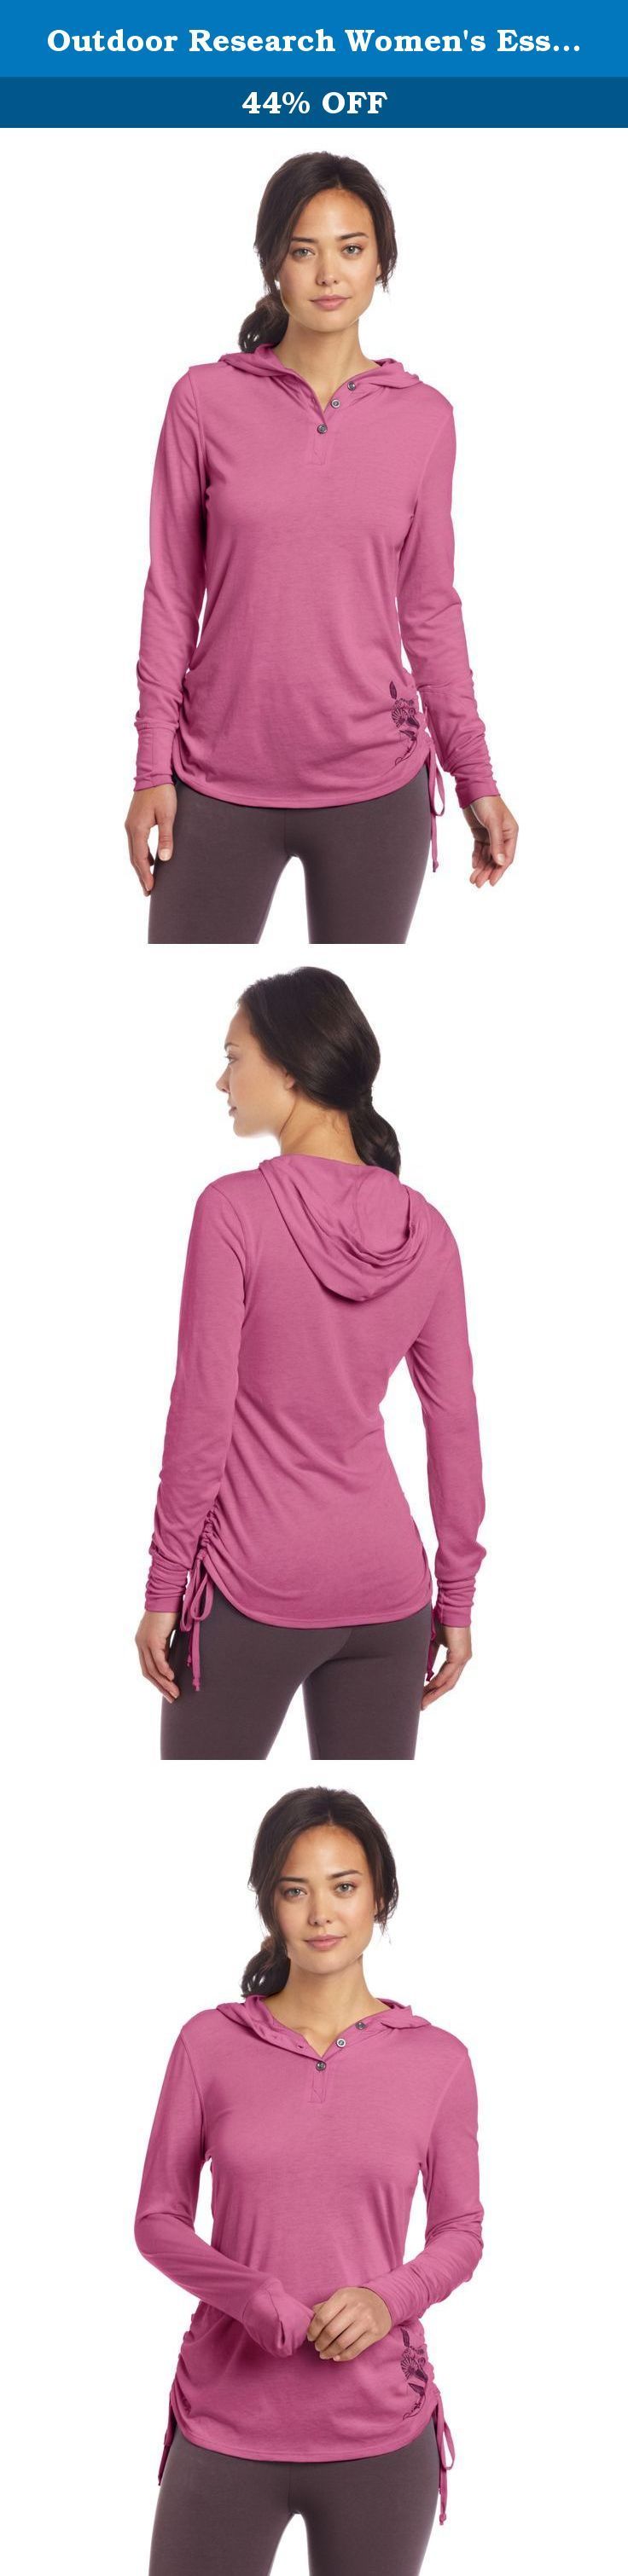 Outdoor Research Women's Essence Hooded Henley Top, Crocus, Medium. Light, soft and quick to dry, he Essence Hooded Henley provides technical performance in a relaxed, feminine silhouette. A wrist pocket holds essentials for an afternoon out or an after work stroll along the creek, and an abstract flower graphic adds a touch of style.